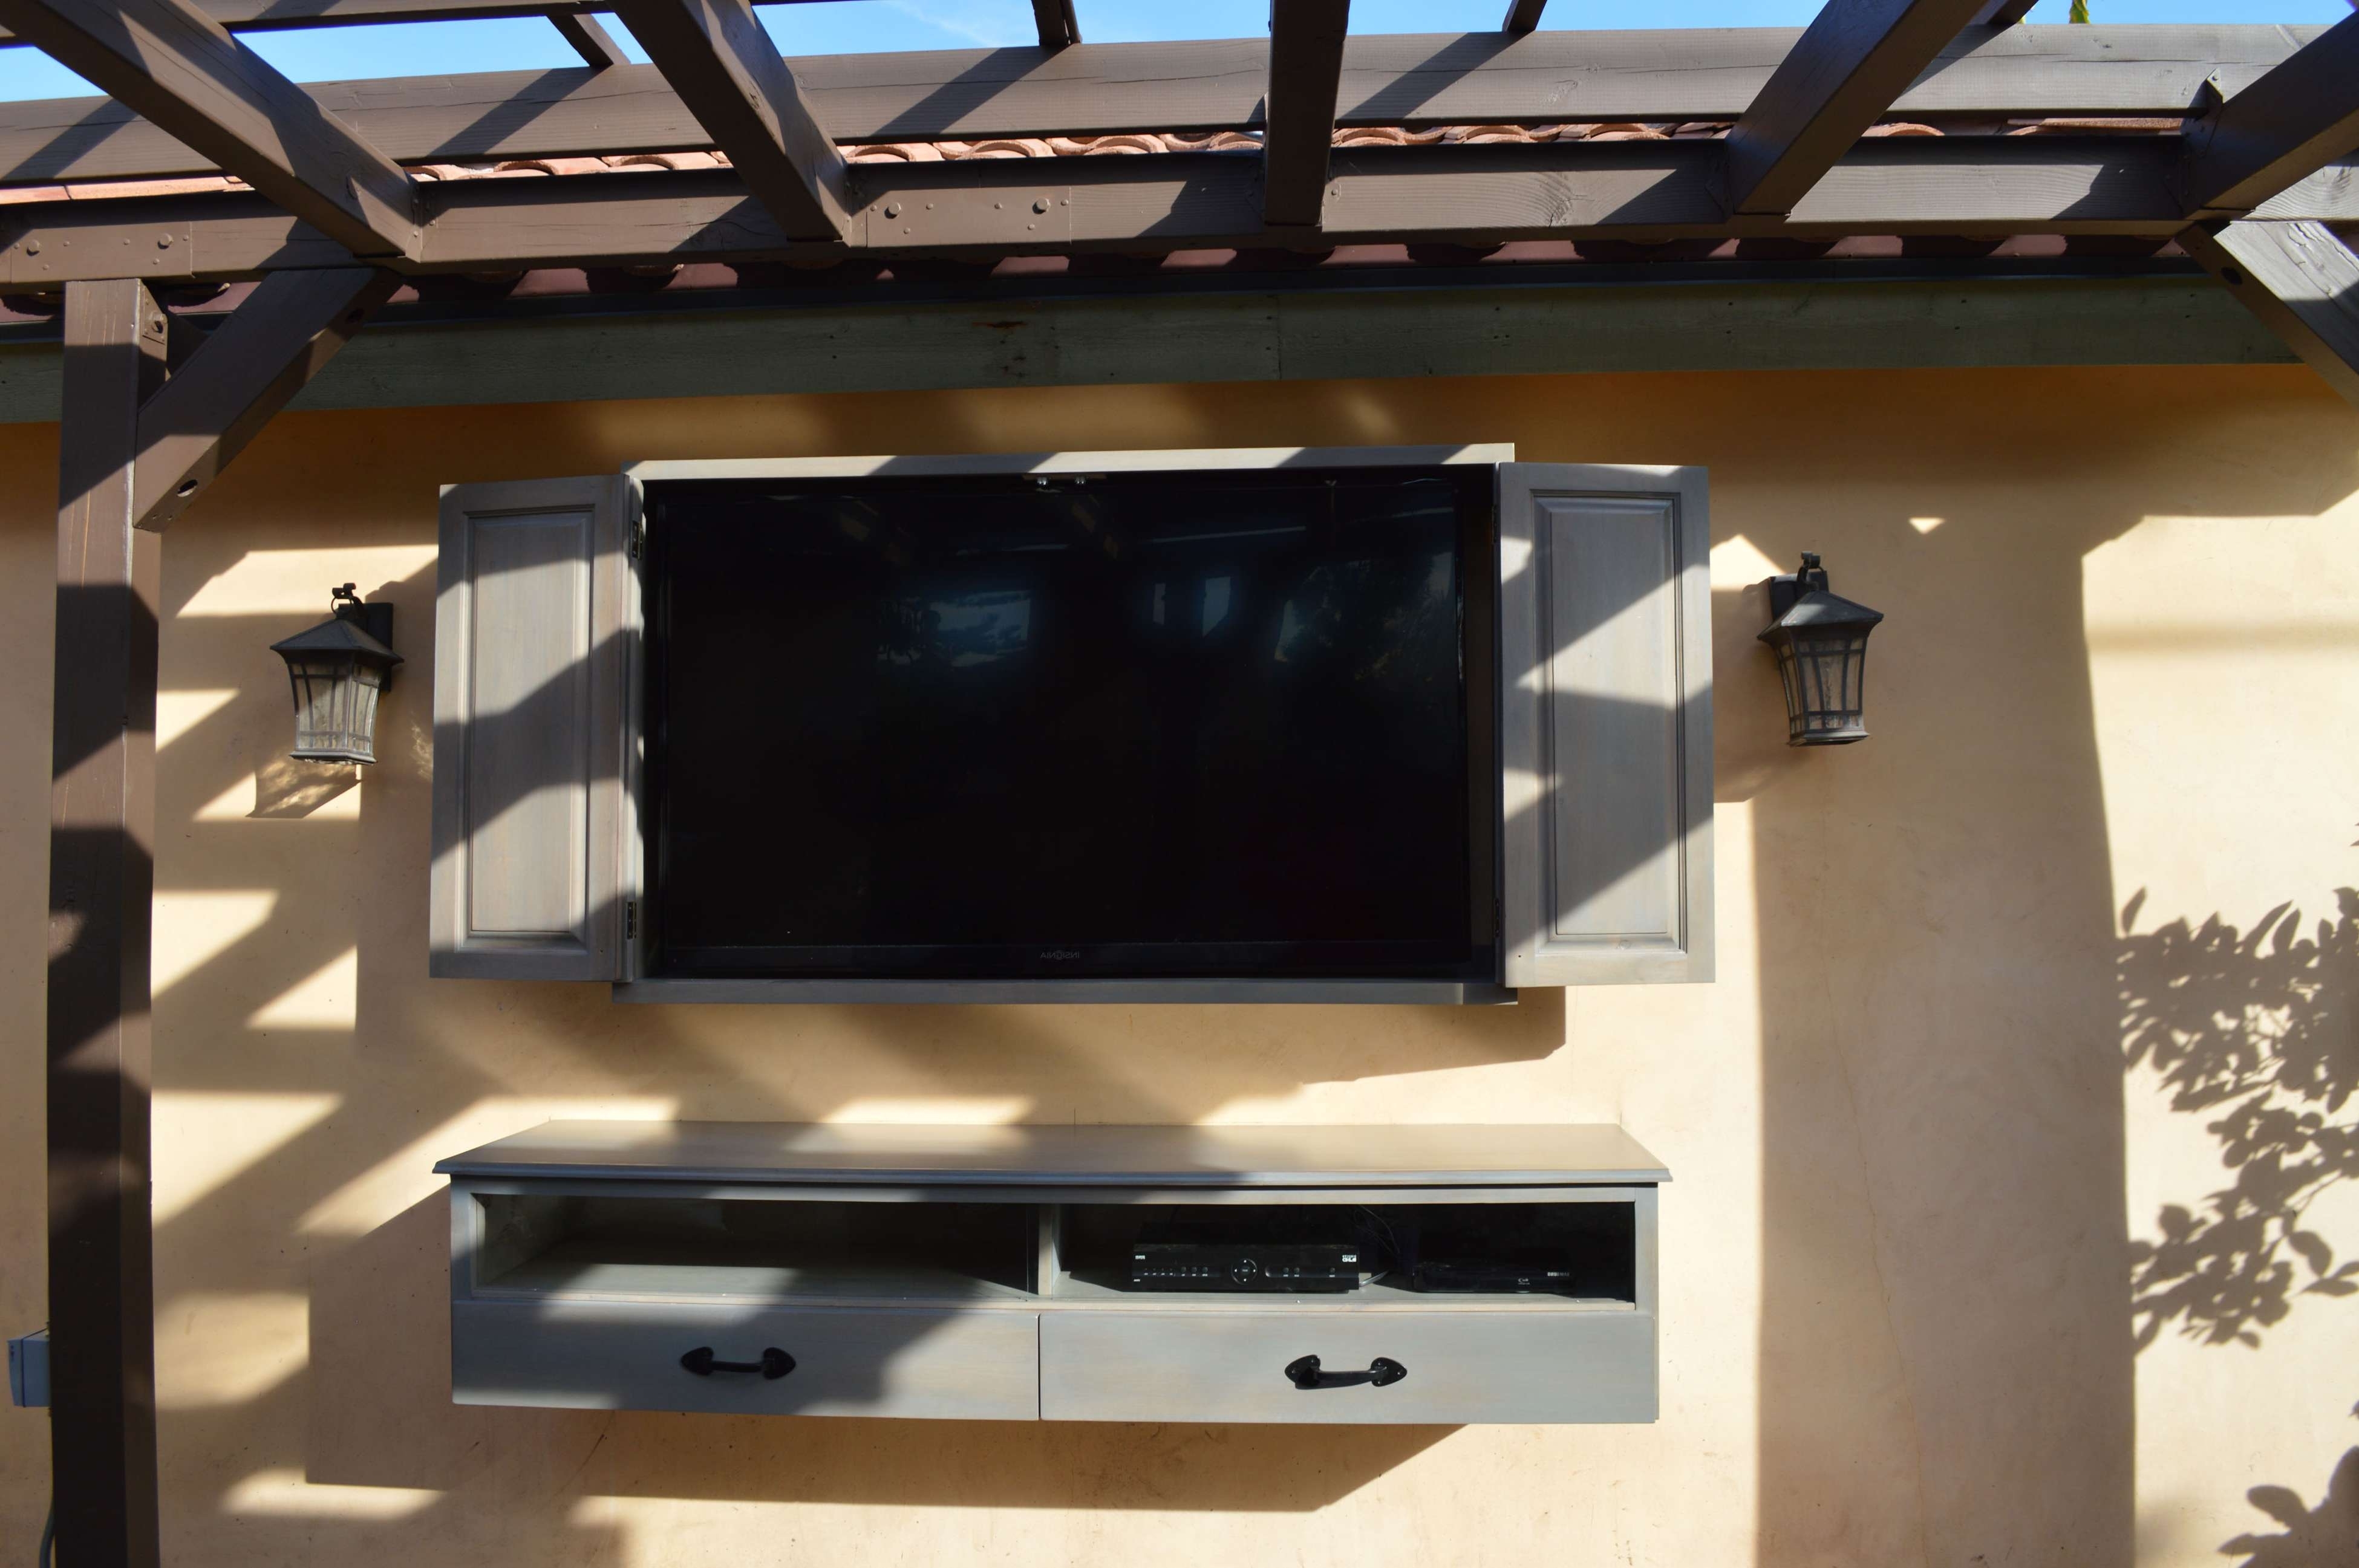 Rustic Outdoor Wall Mounted Tv Cabinets For Flat Screens With With Regard To Wall Mounted Tv Cabinets With Doors (View 12 of 20)